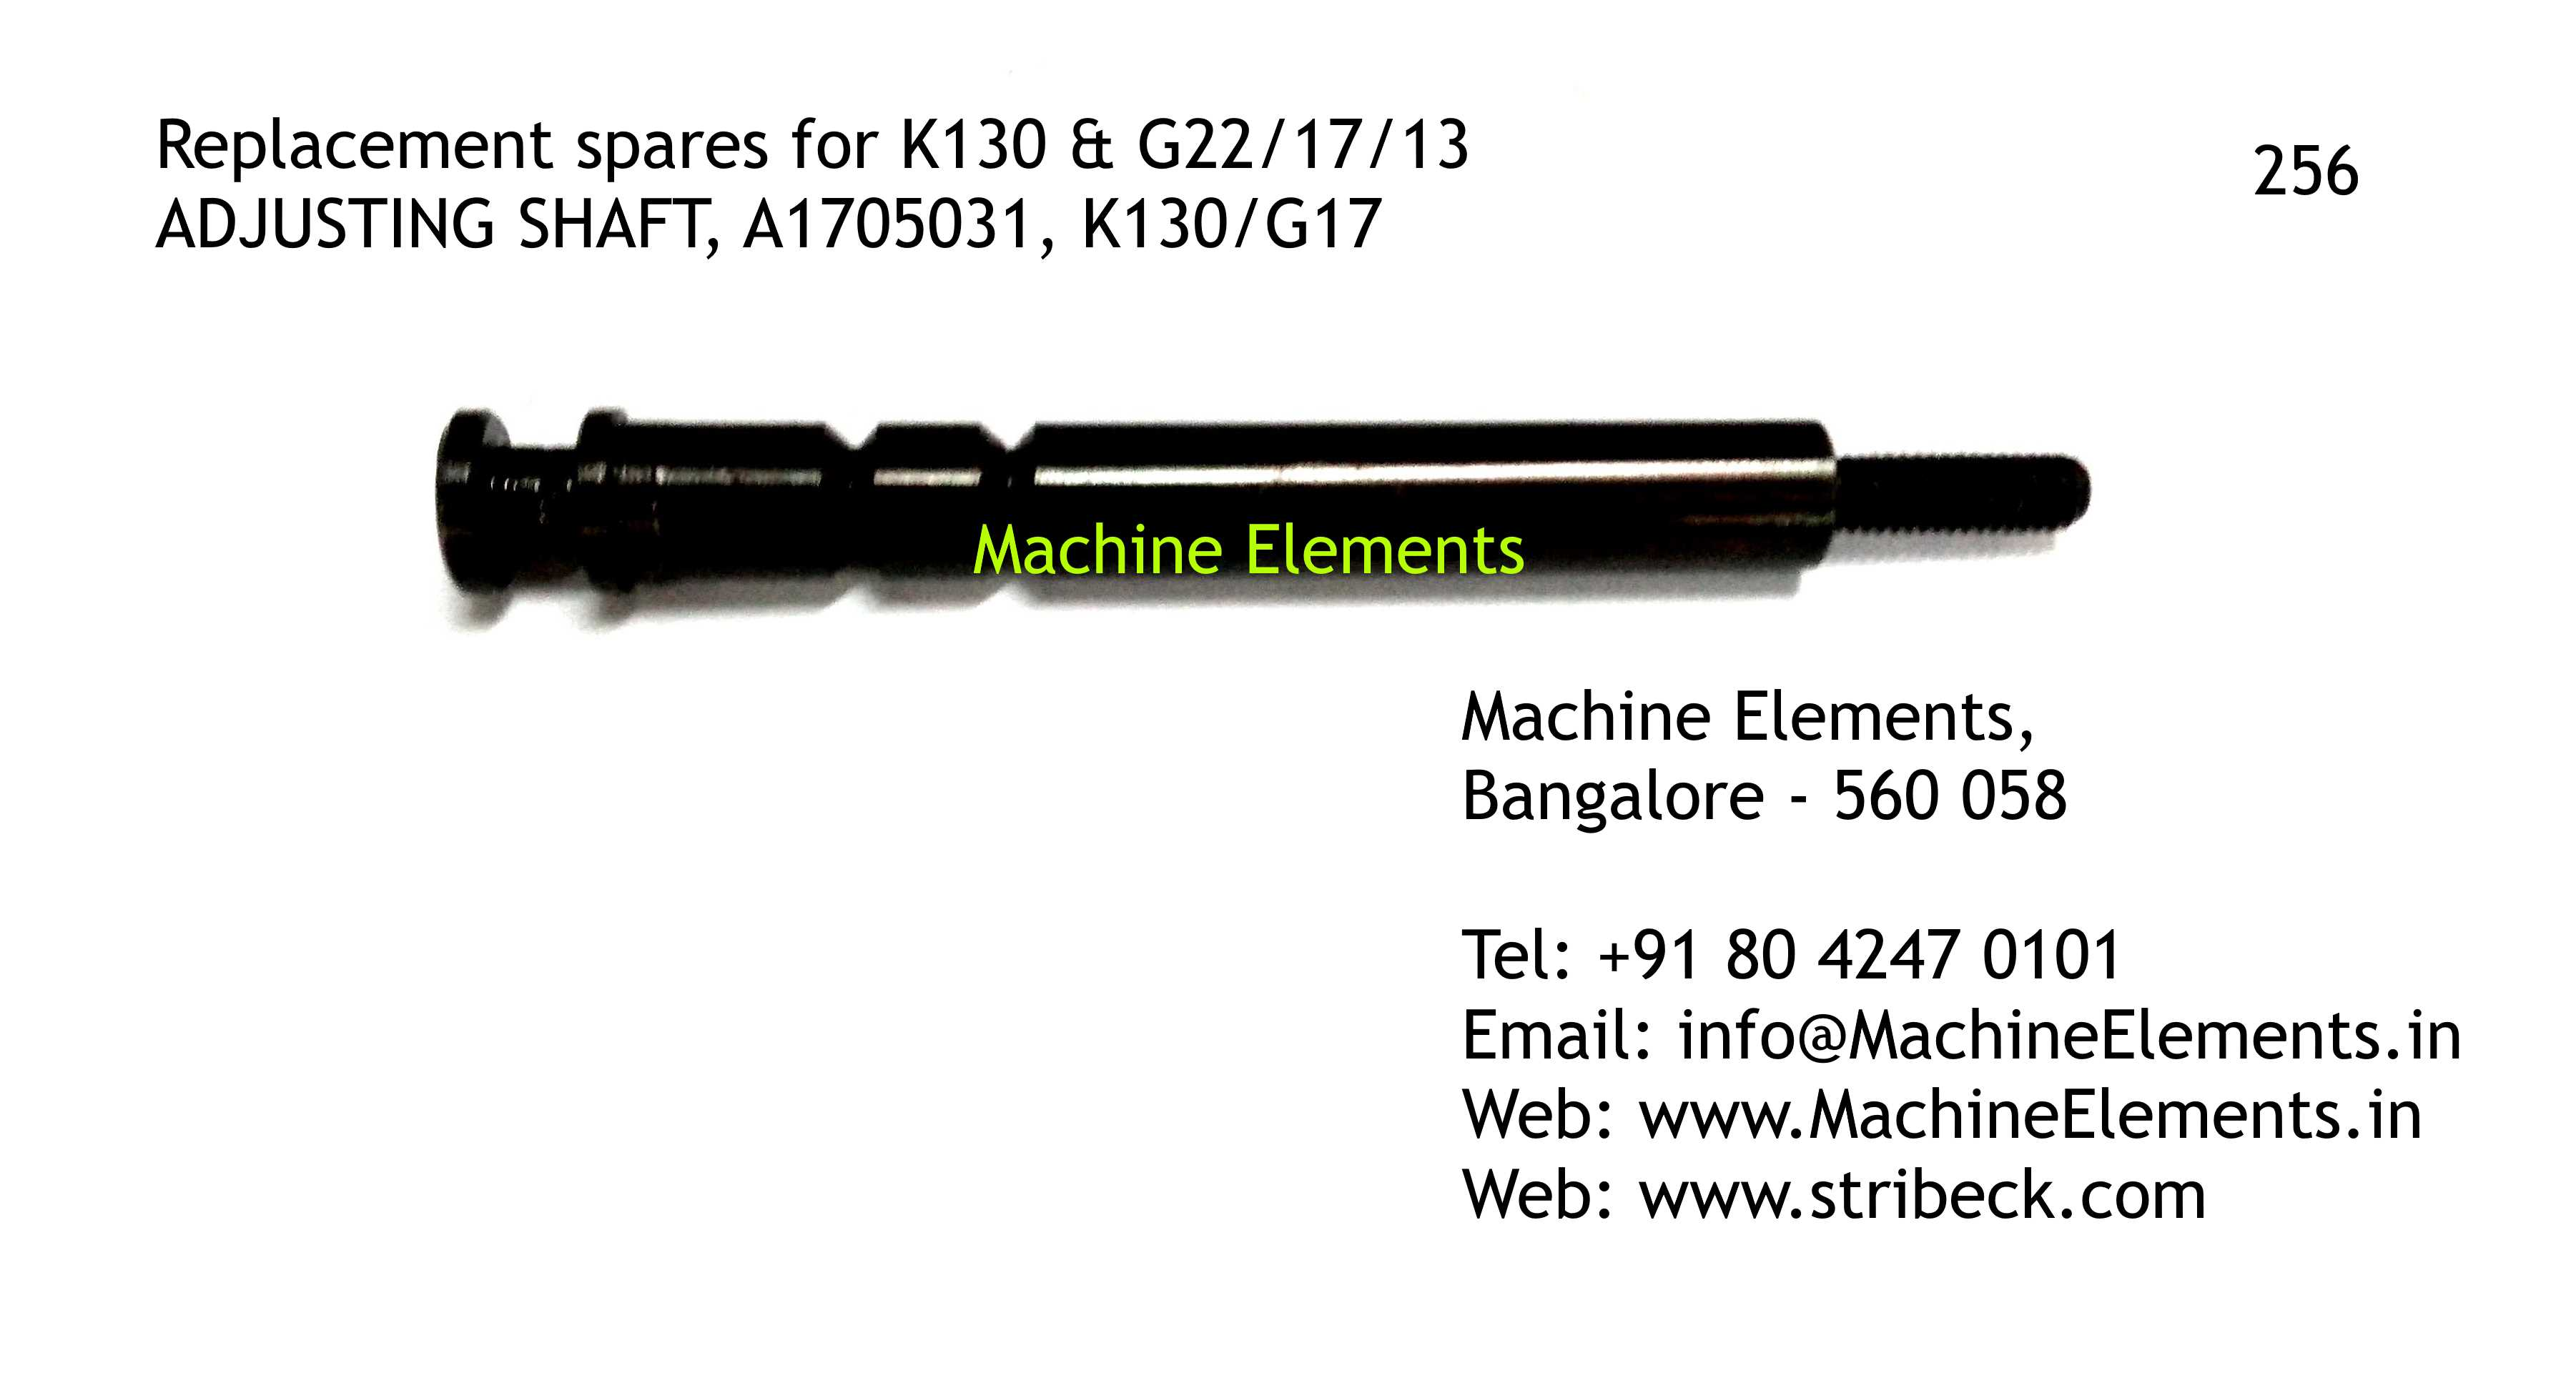 ADJUSTING SHAFT, A1705031